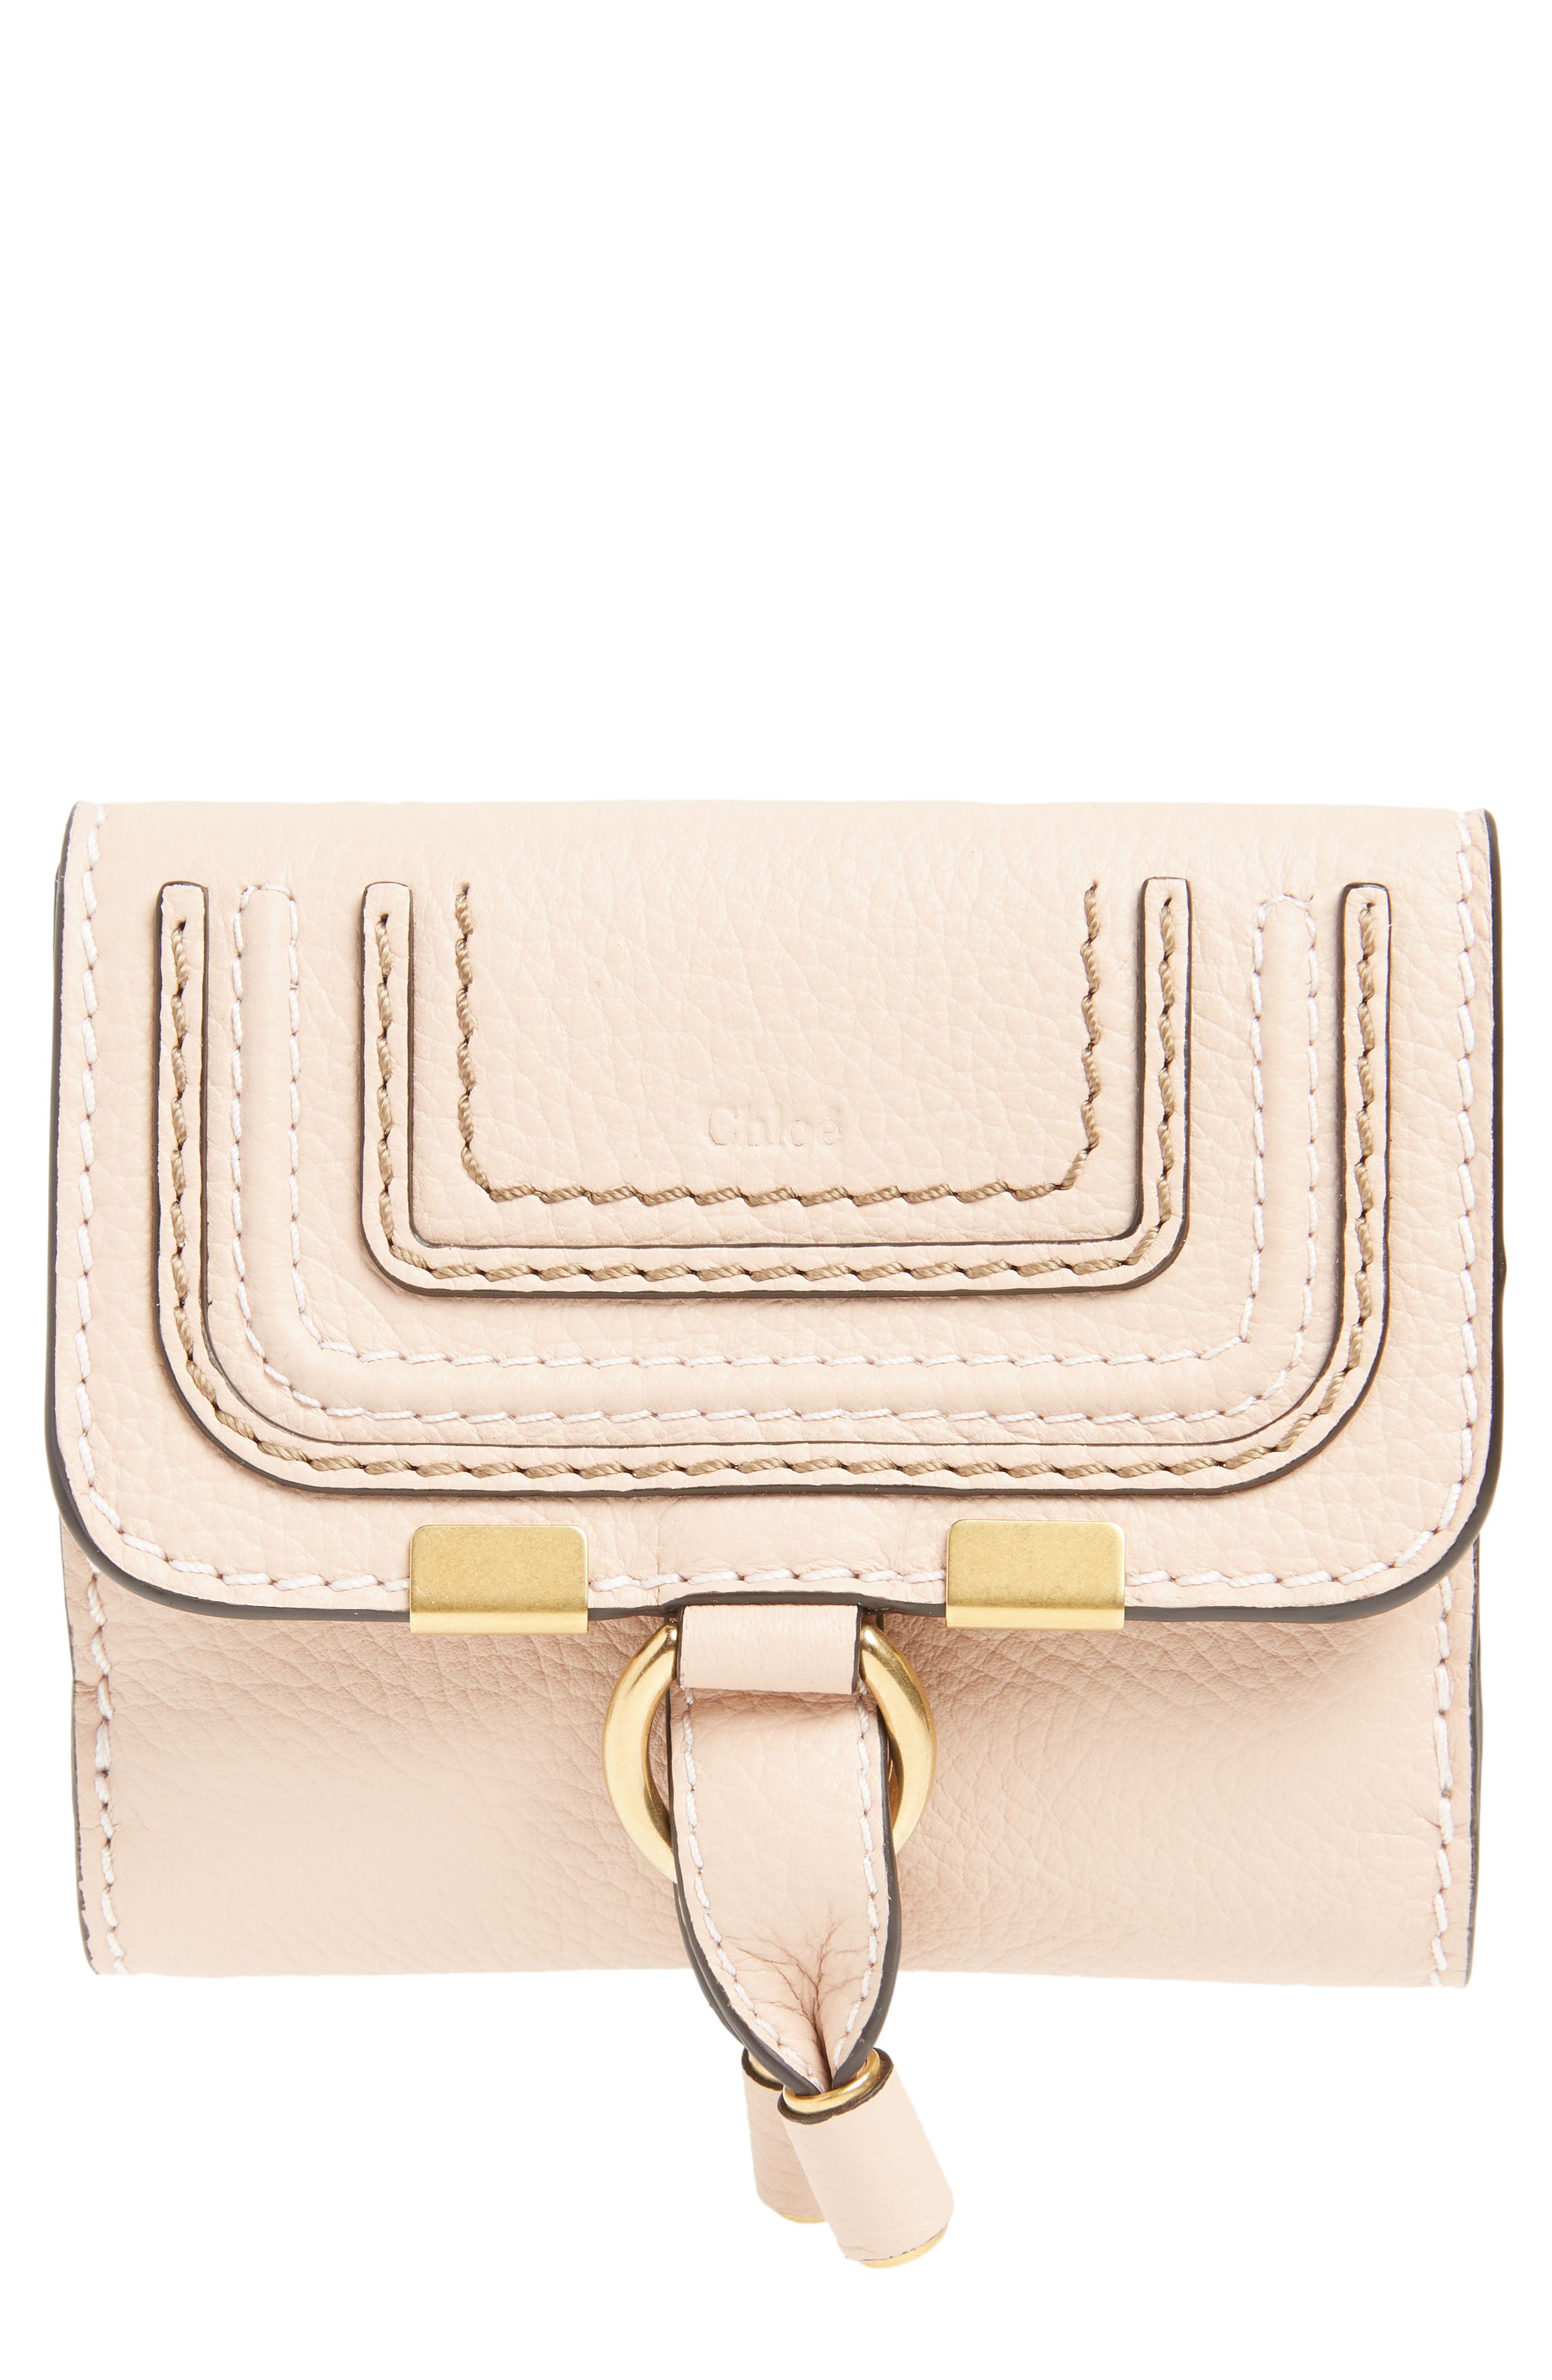 'Marcie' French Wallet,                             Main thumbnail 1, color,                             Blush Nude